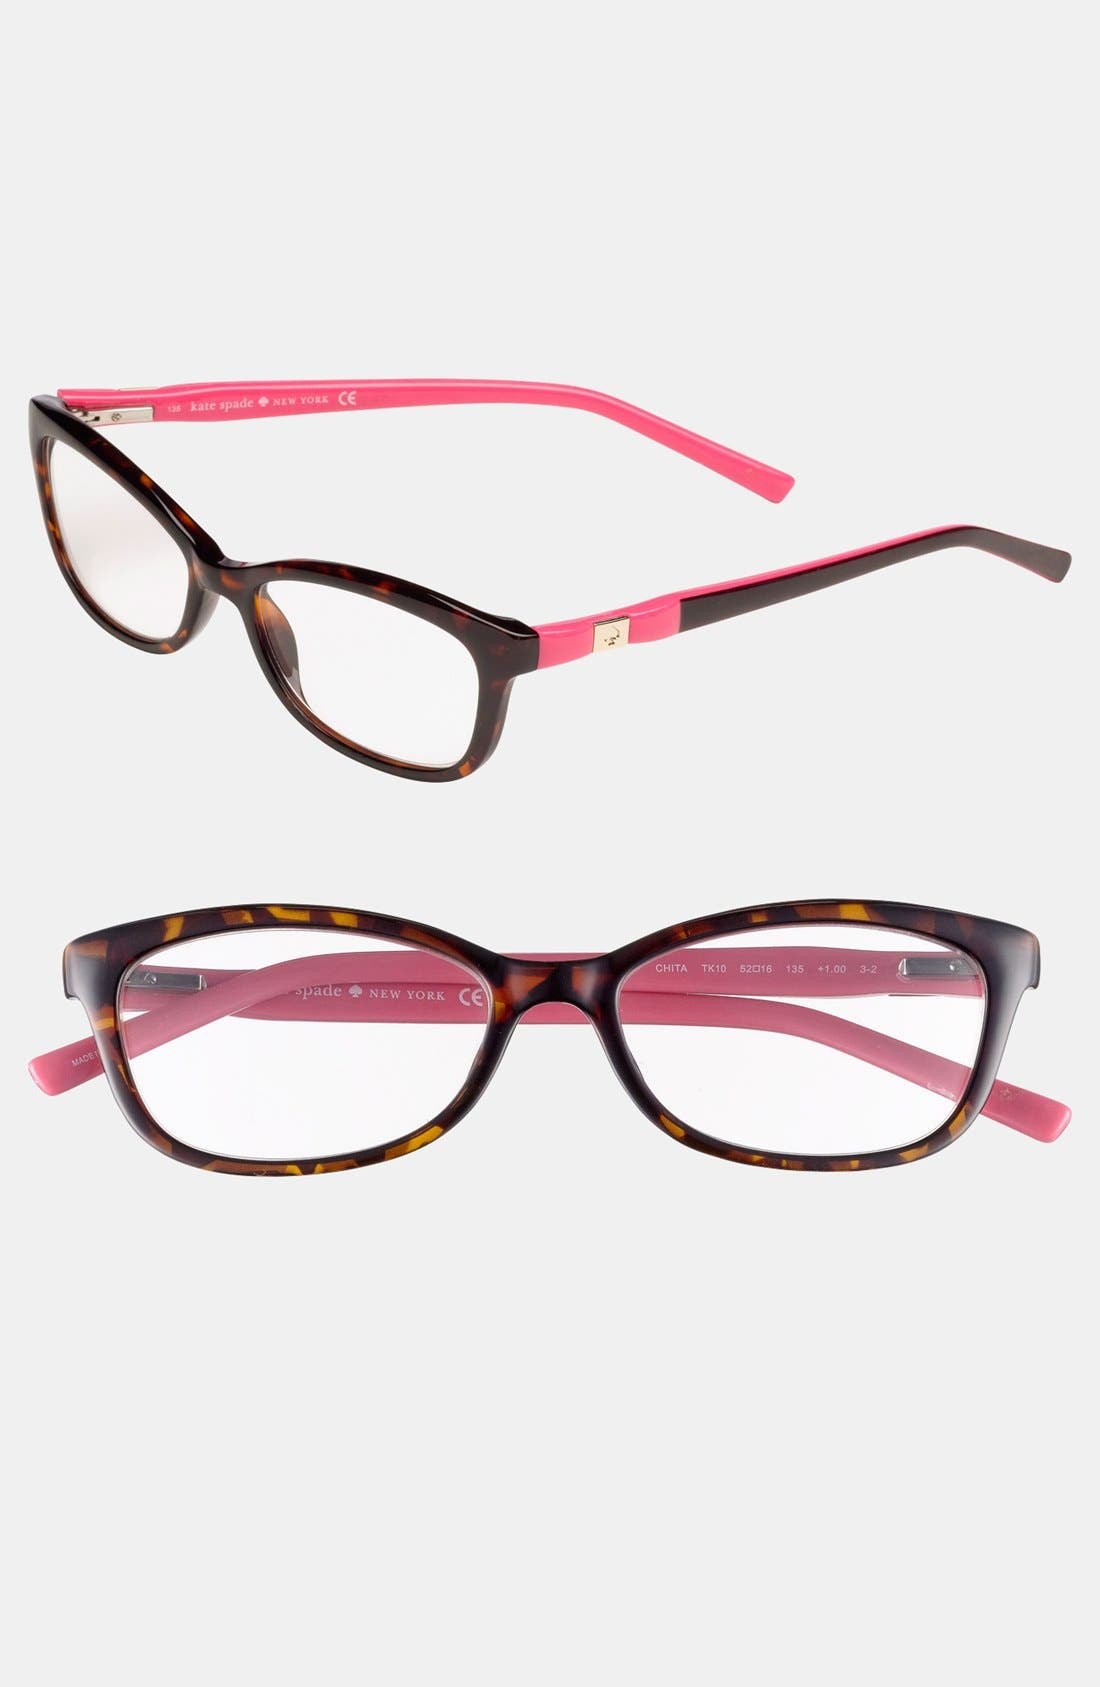 Main Image - kate spade new york 'chita' 52mm reading glasses